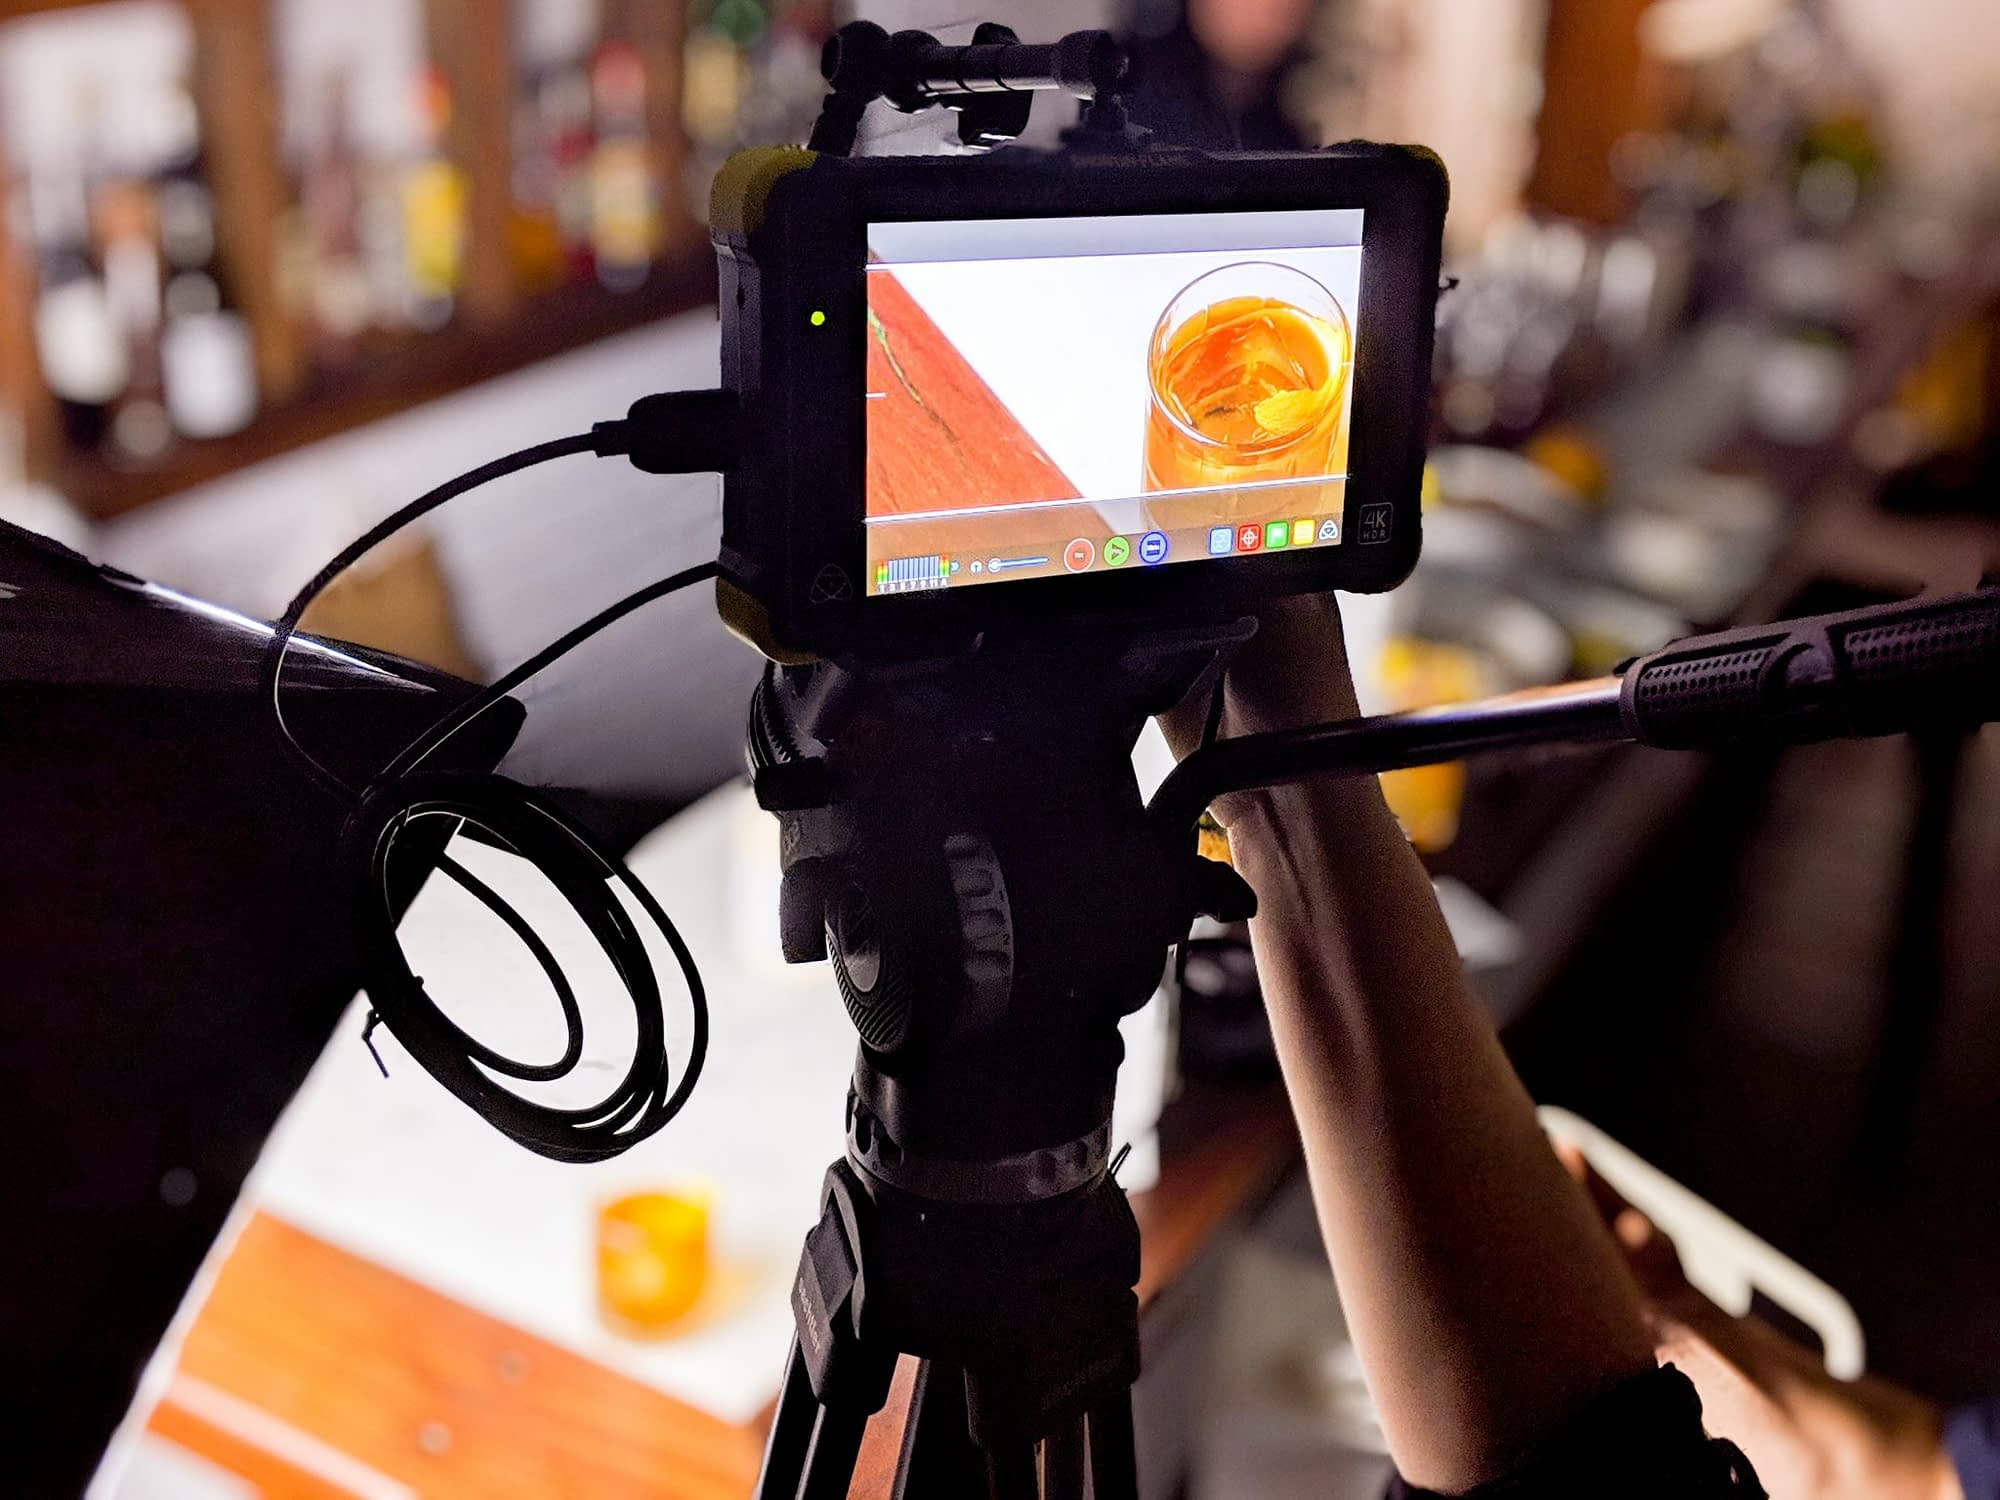 Large camera viewer displaying a product shot for a cocktail in a bar. Cocktail is out-of-focus but visible in the background.